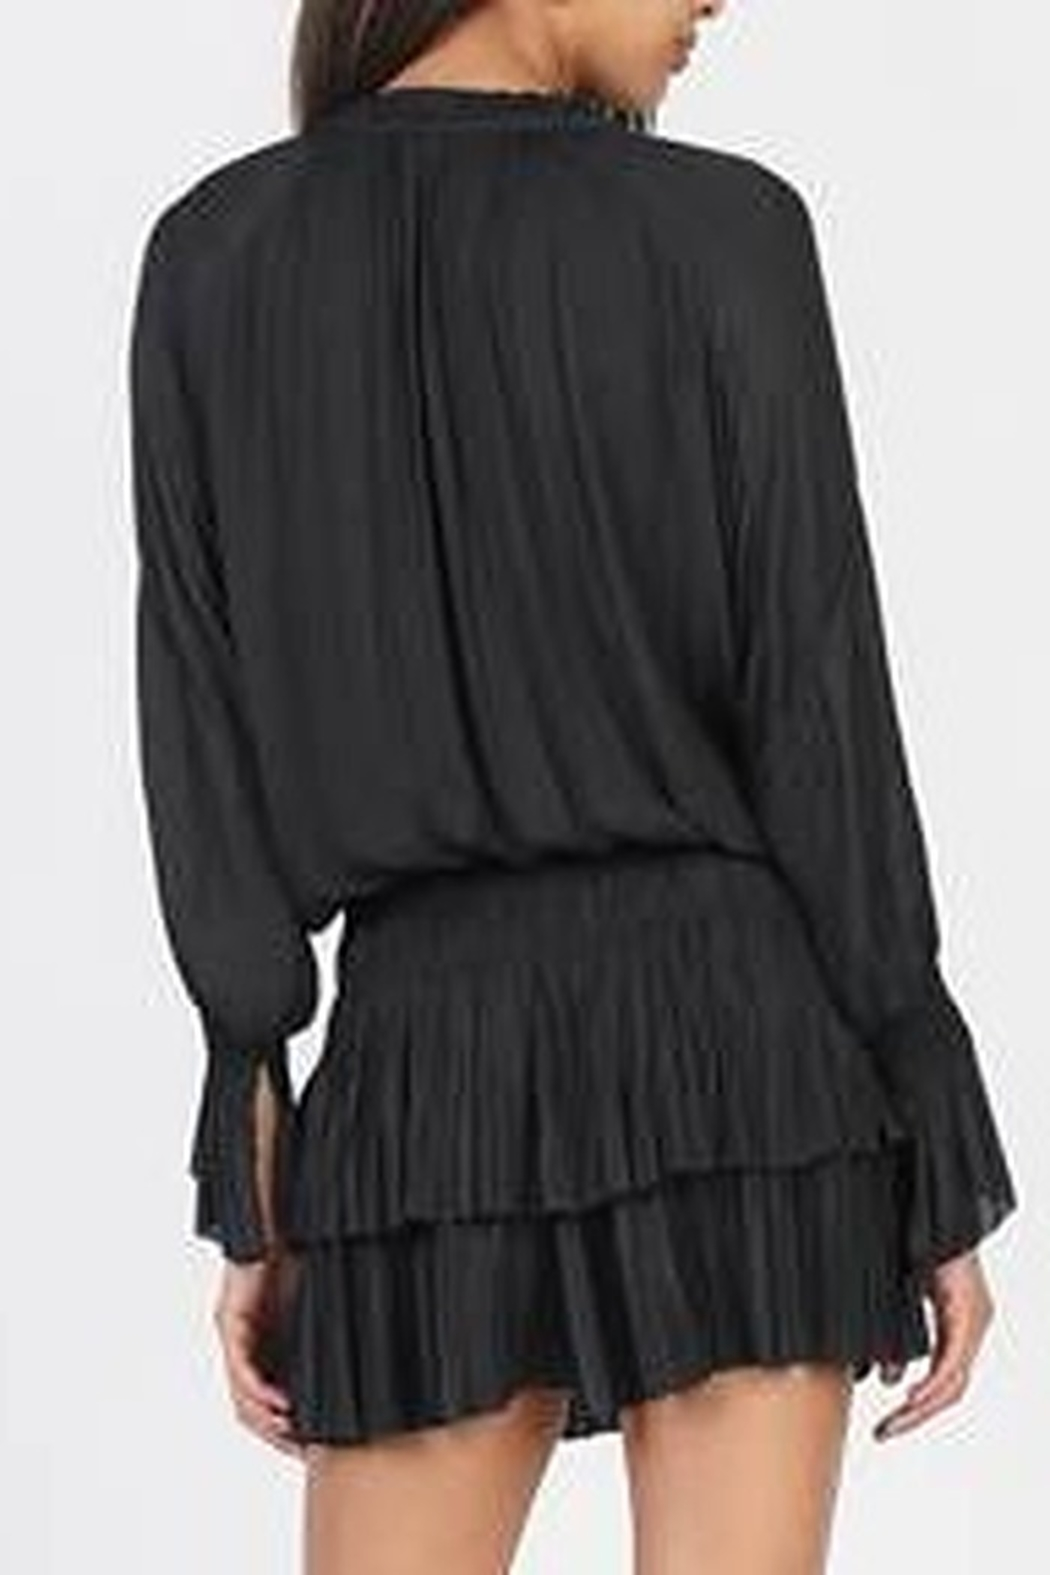 Current Air  Ruffle Collar Dress - Front Full Image